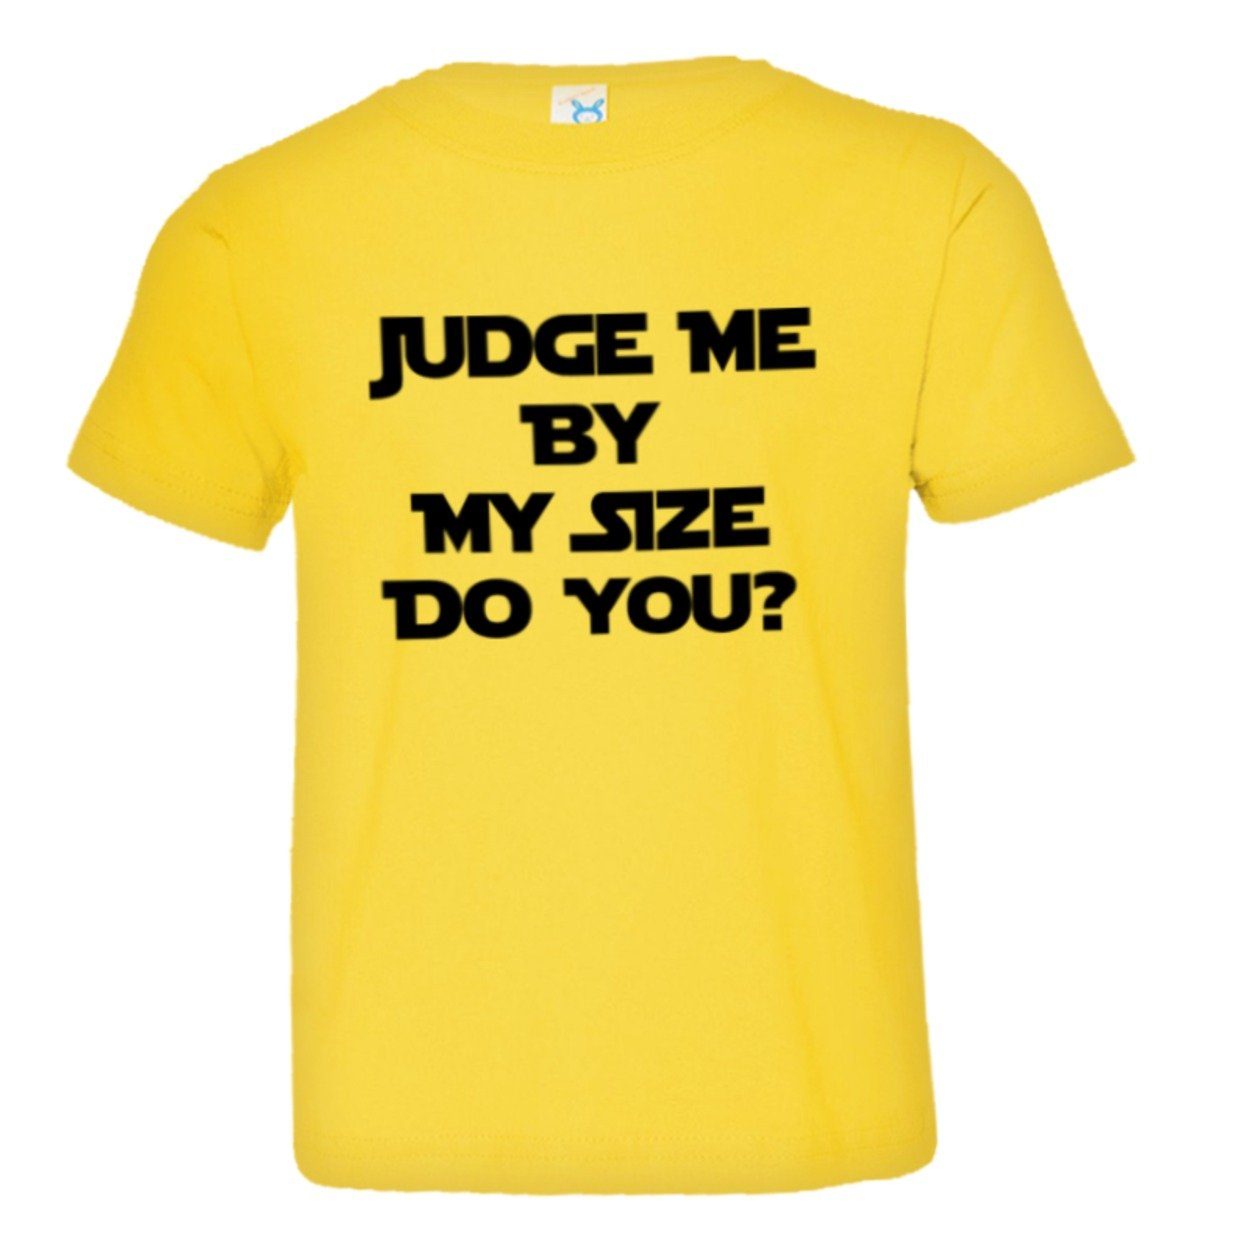 PleaseMeTees Toddler Judge Me by My Size Do You HQ Tee Shirt